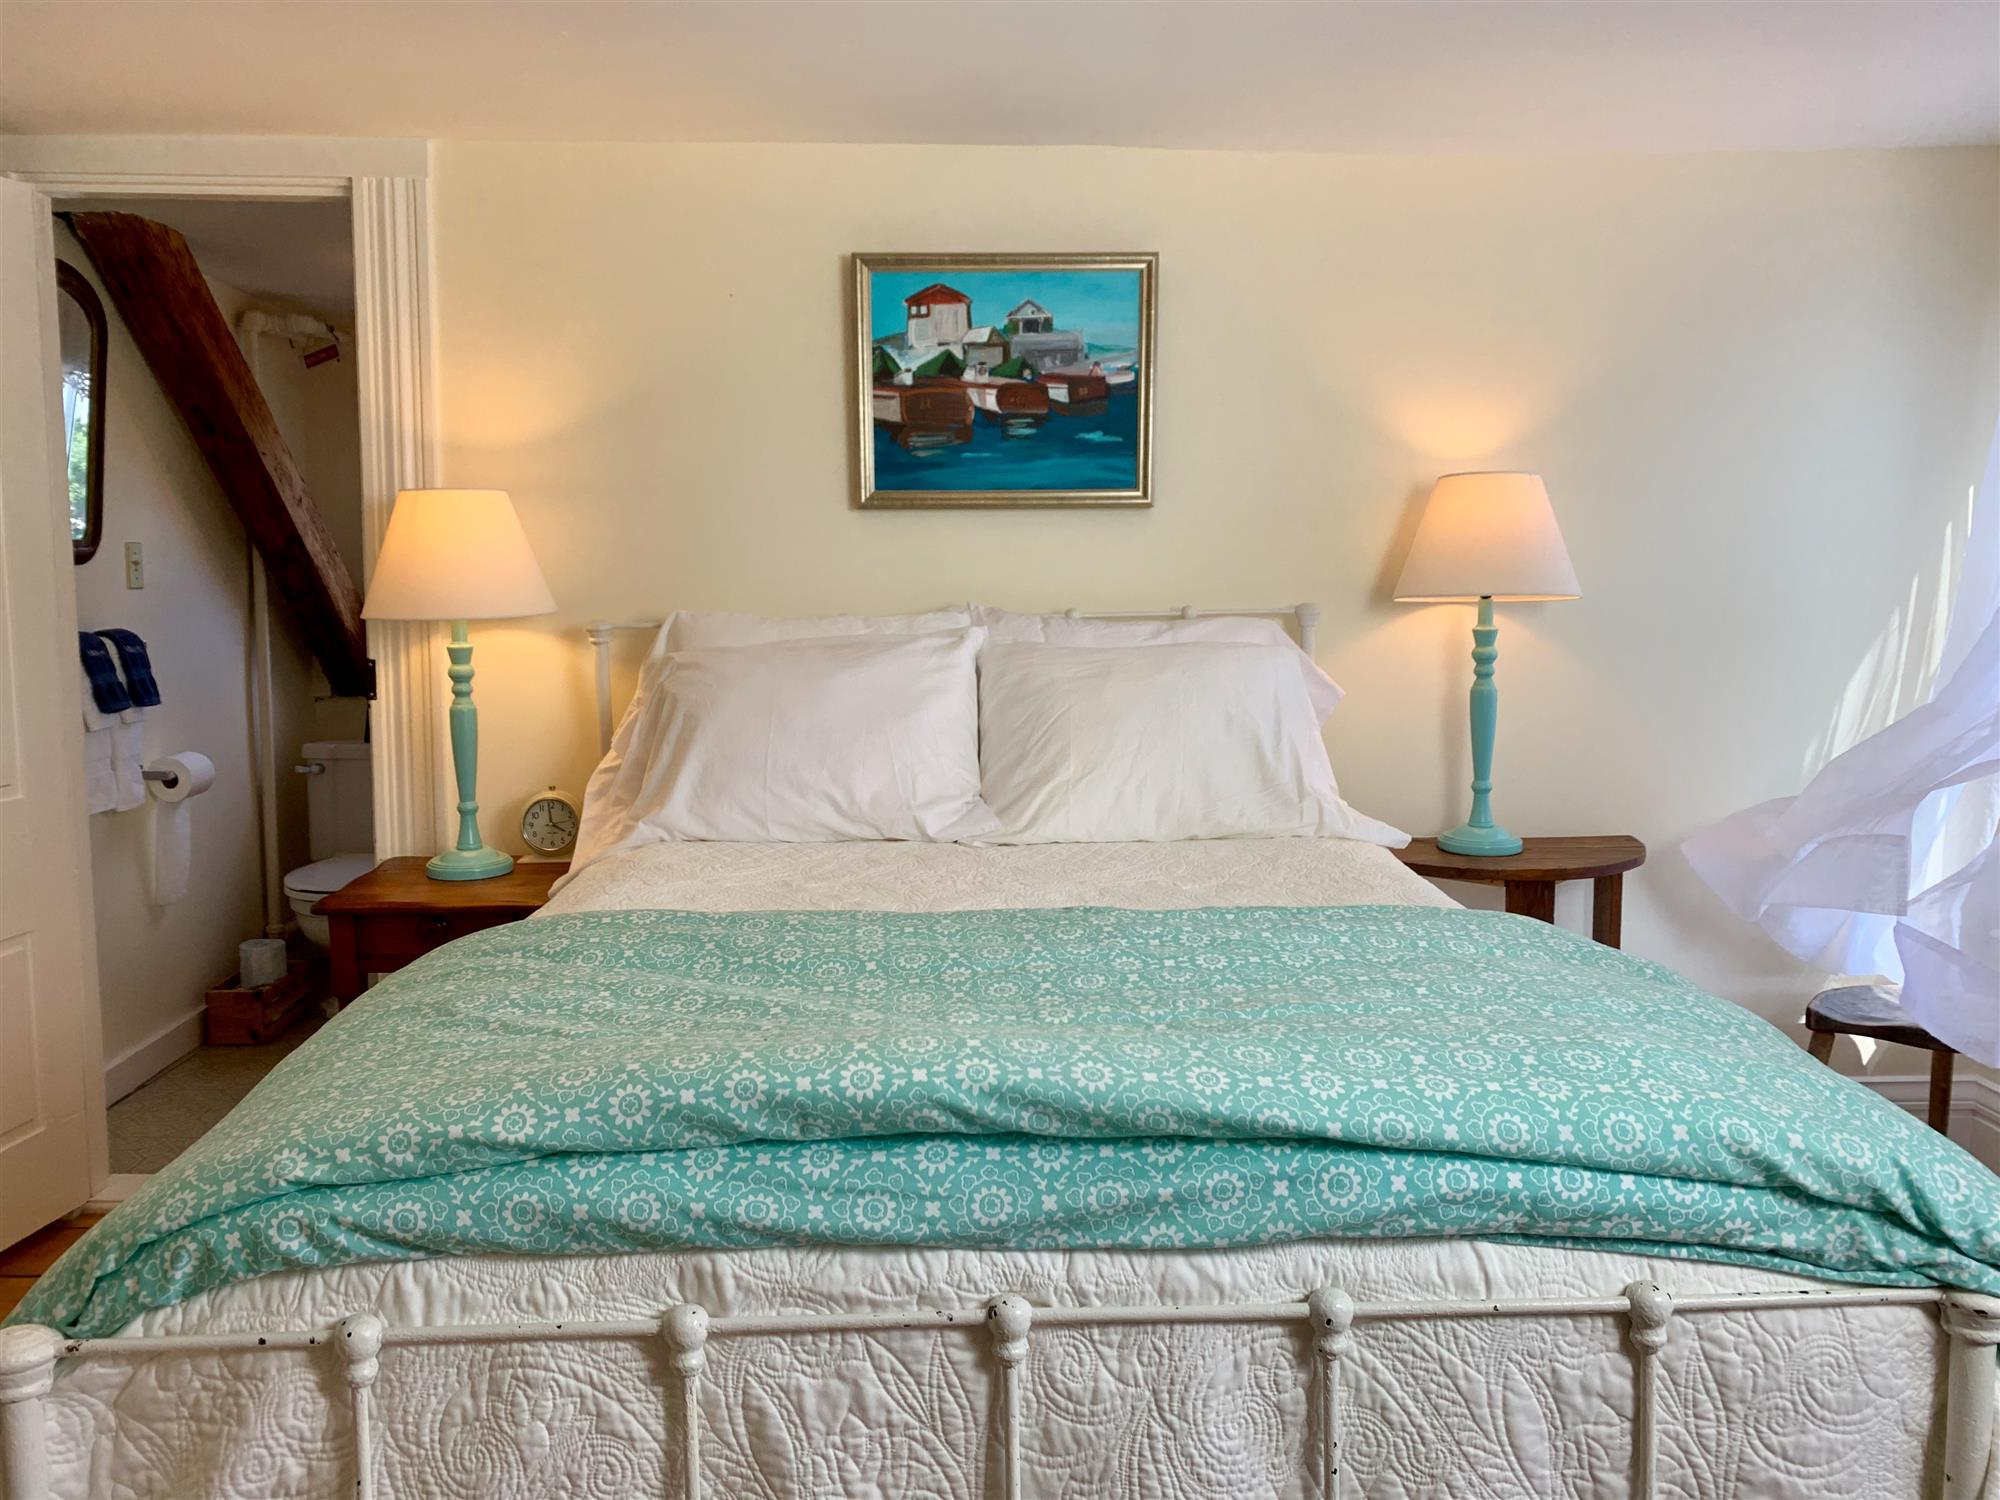 Image for 16) Little Caldwell (Room 9/10) at Ocean House